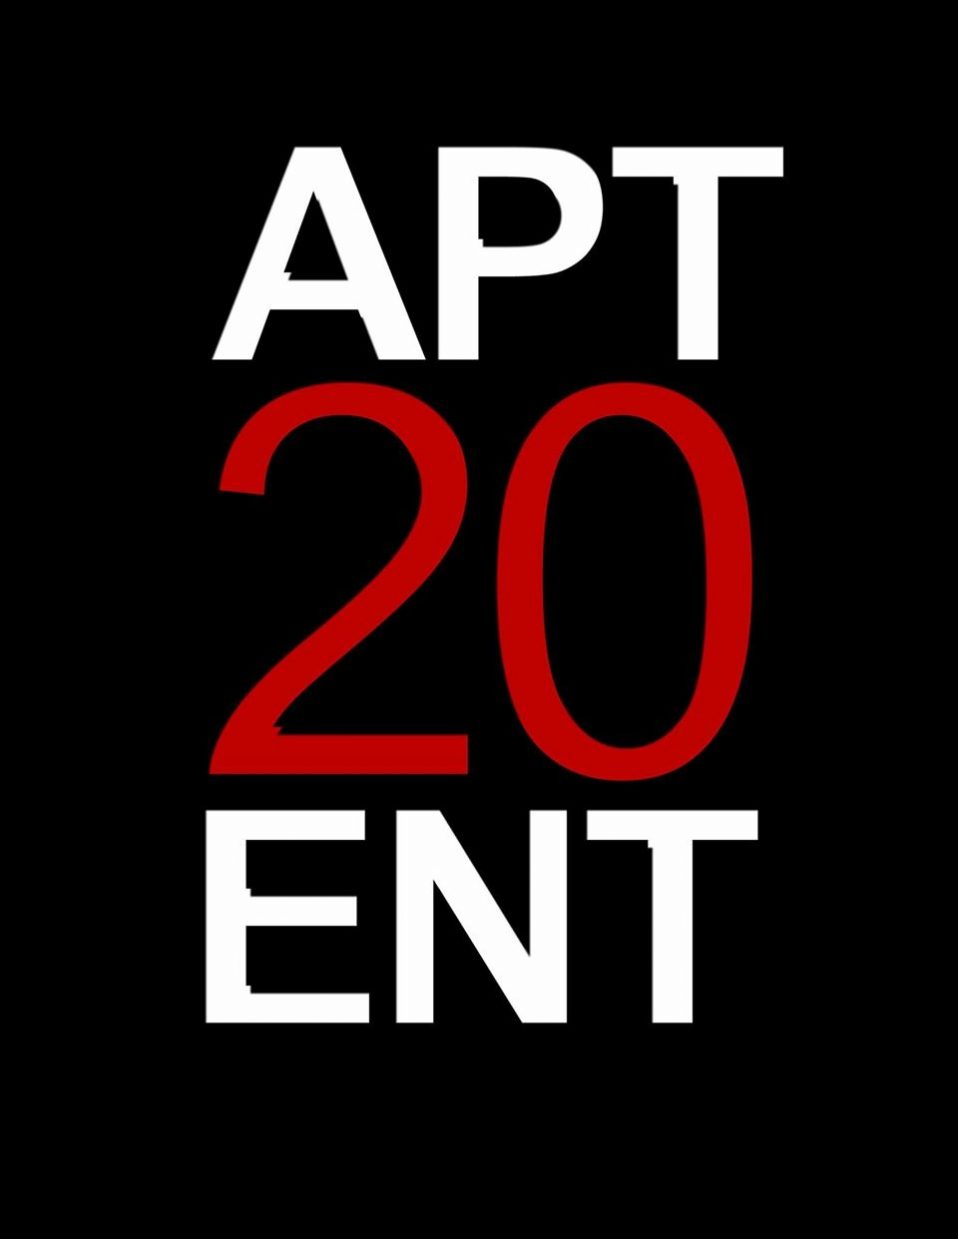 Apartment 20 Enterprises